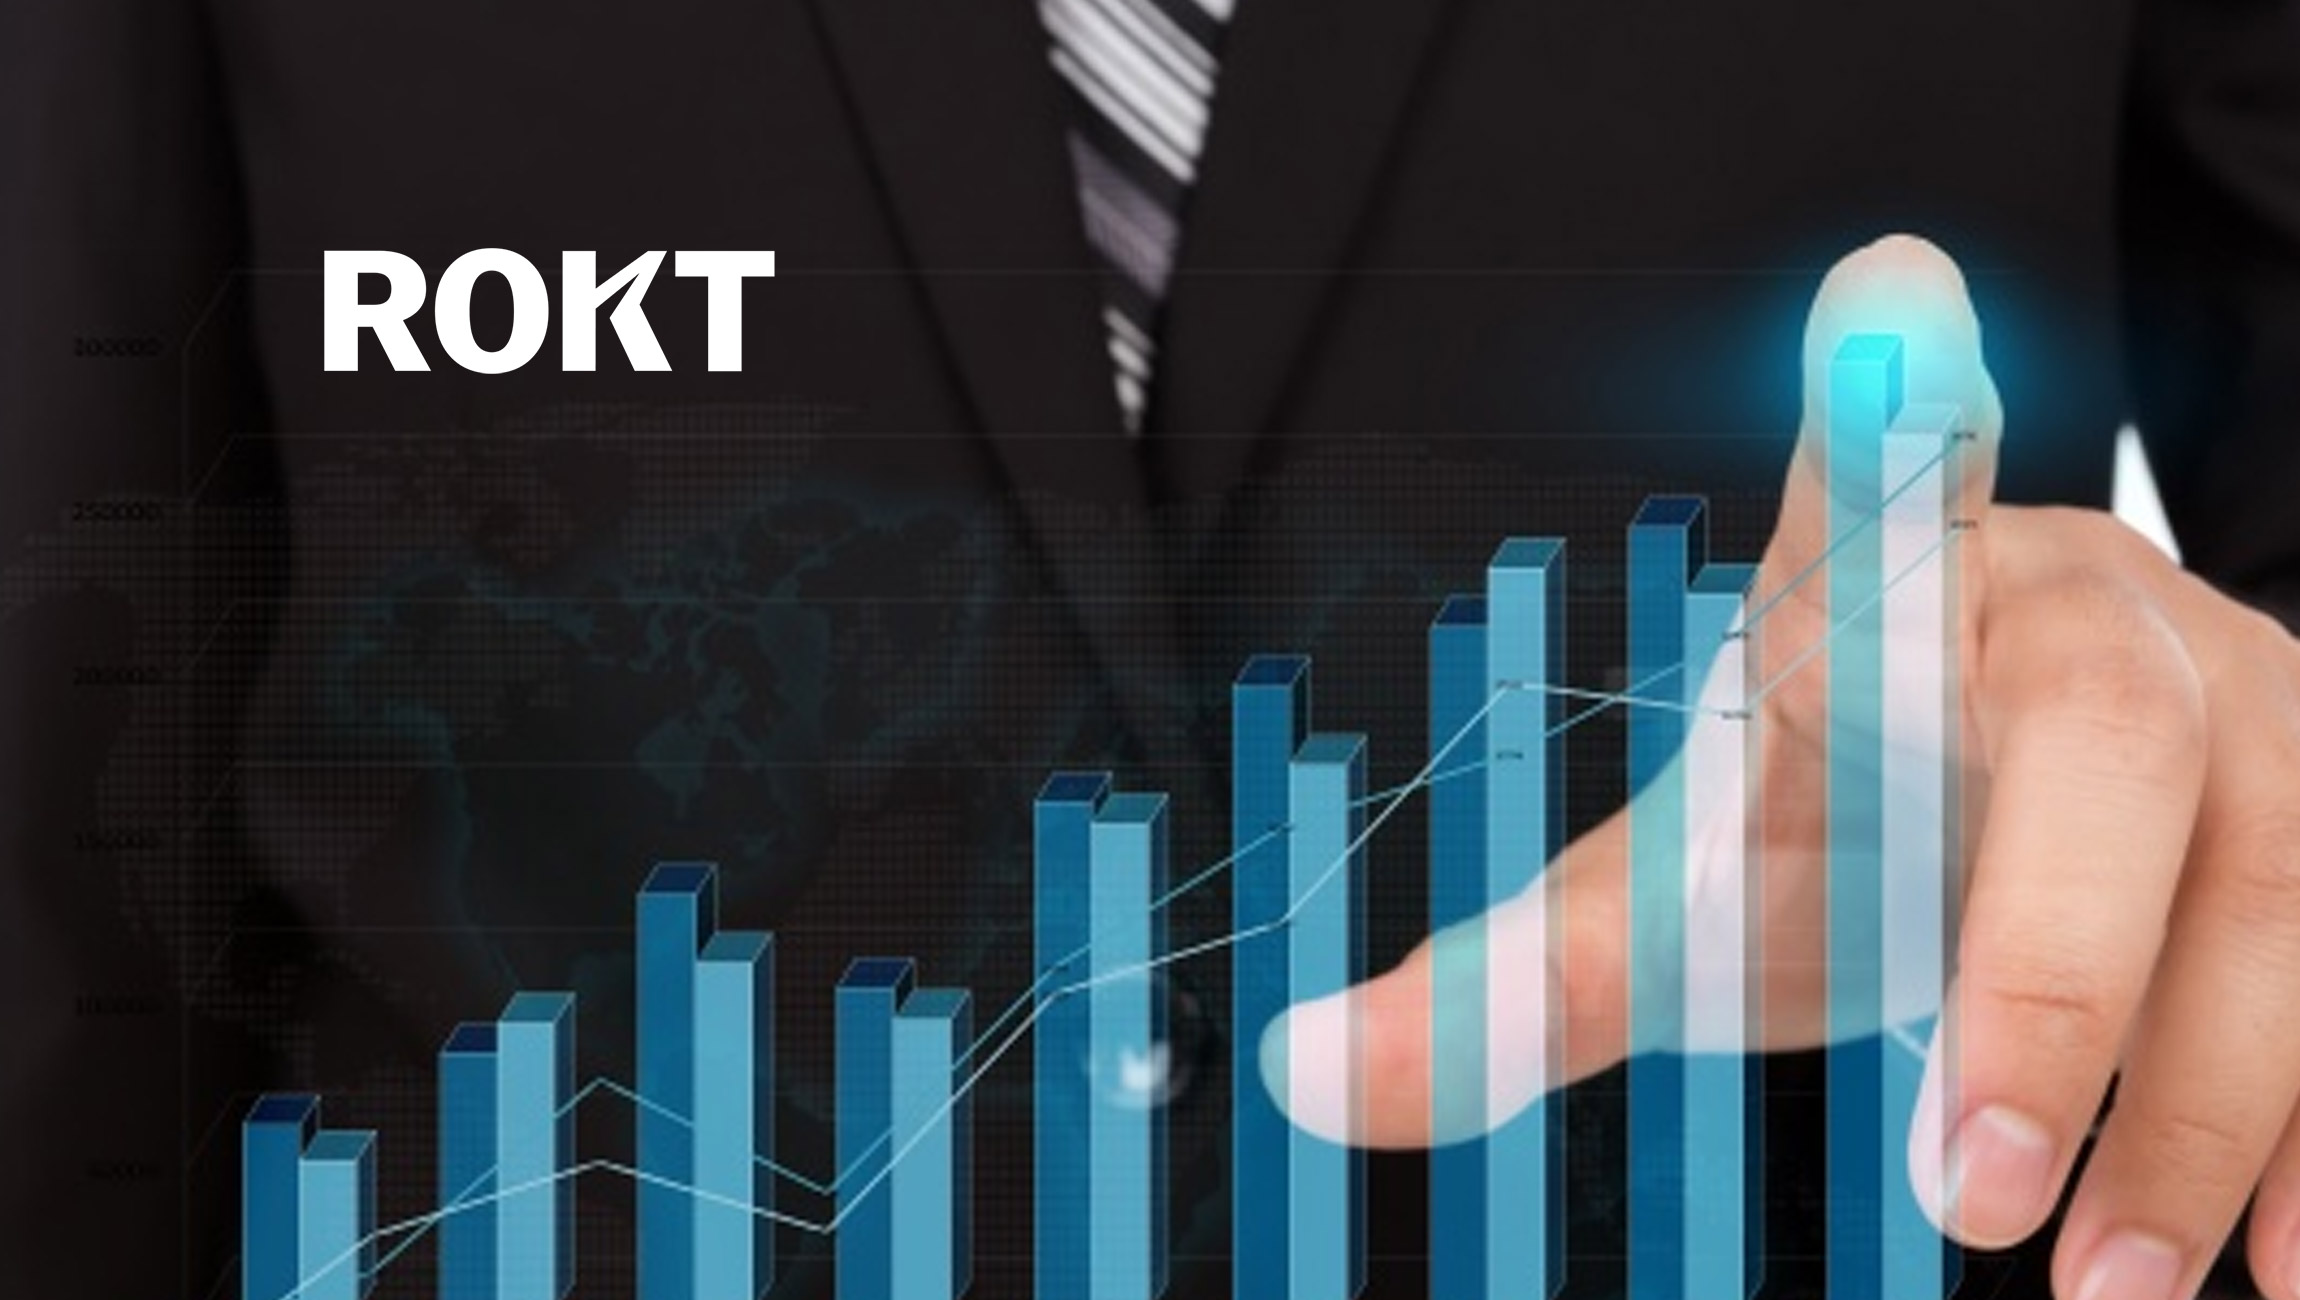 Rokt Closes Us$80m Series D Investment Round as COVID-19 Drives Significant Demand in E-Commerce